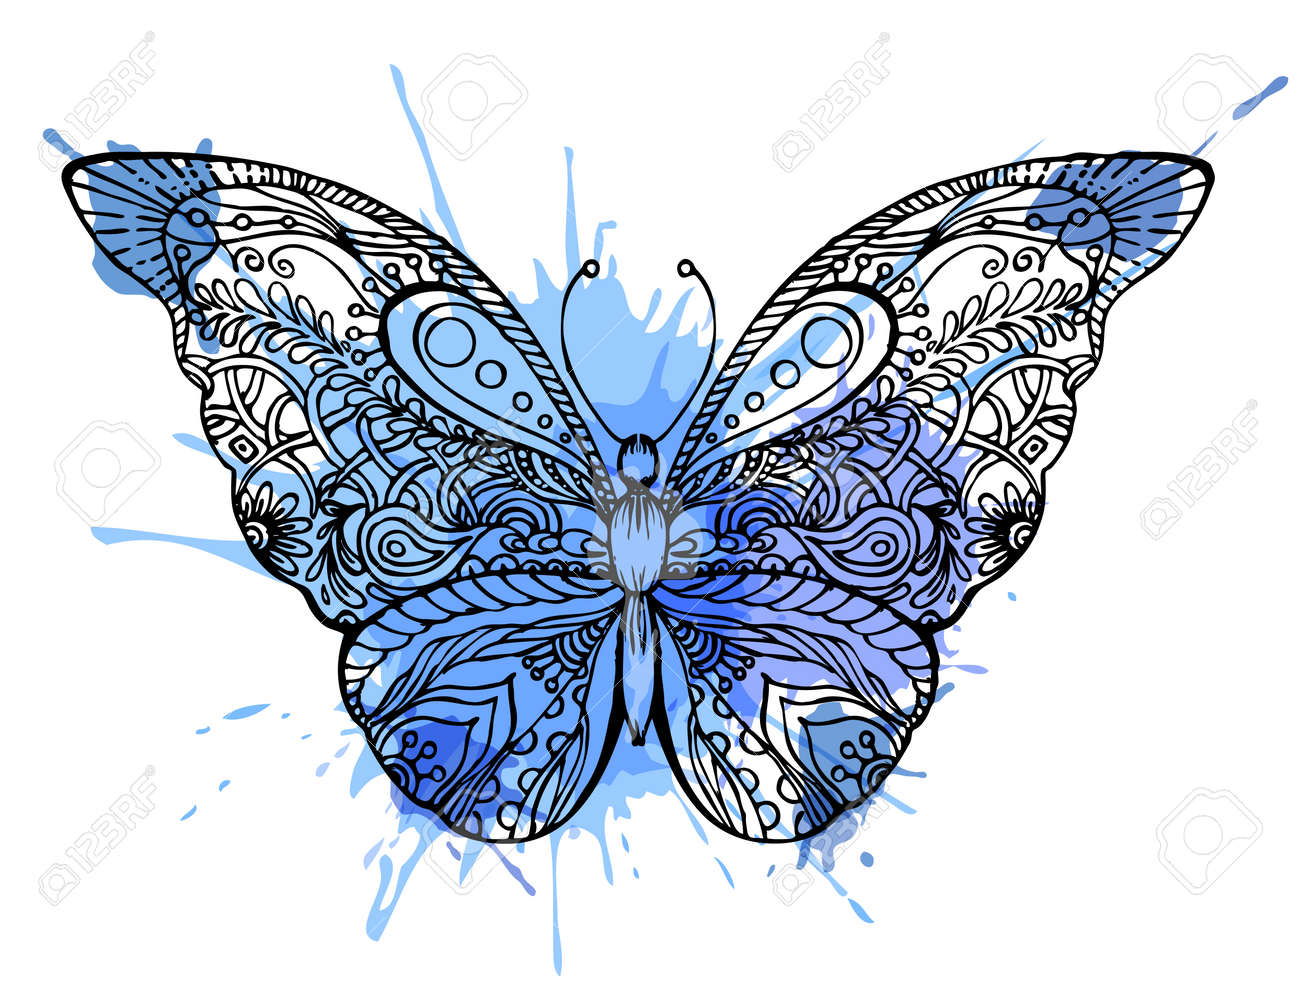 Illustration of doodle butterfly sketch stock vector 64921872